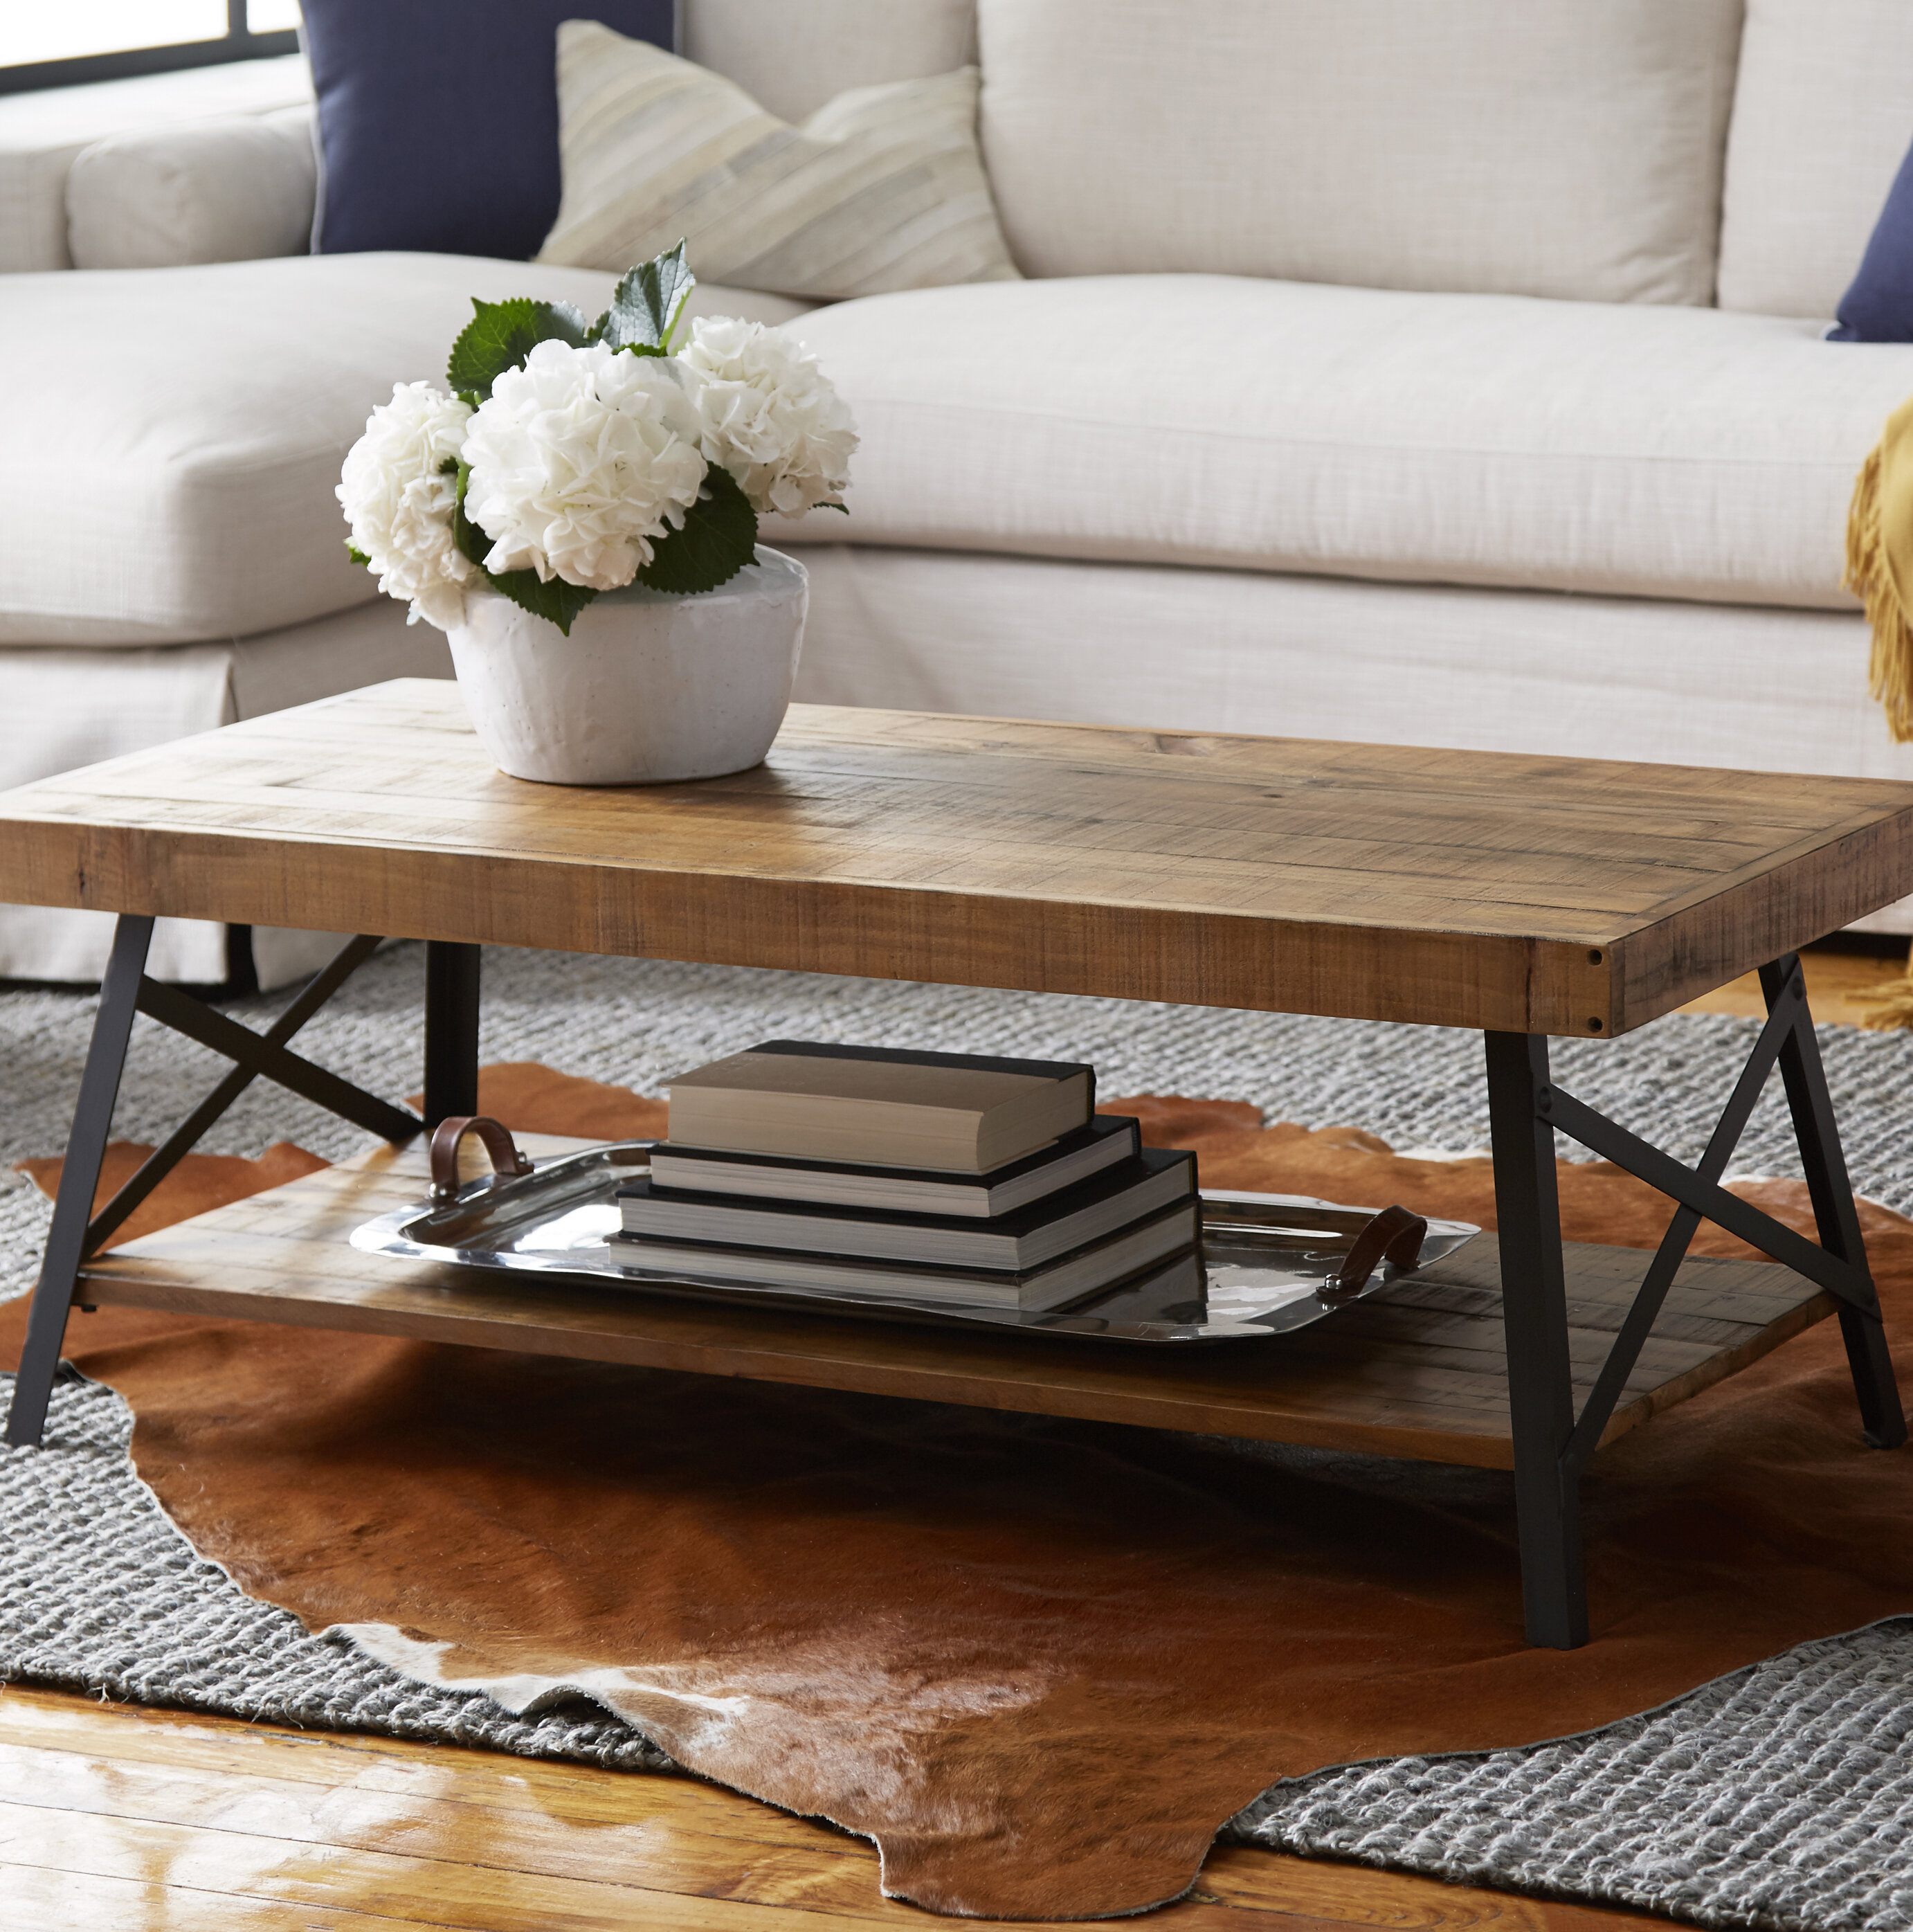 Brilliant Farmhouse Rustic Coffee Tables Birch Lane Download Free Architecture Designs Scobabritishbridgeorg